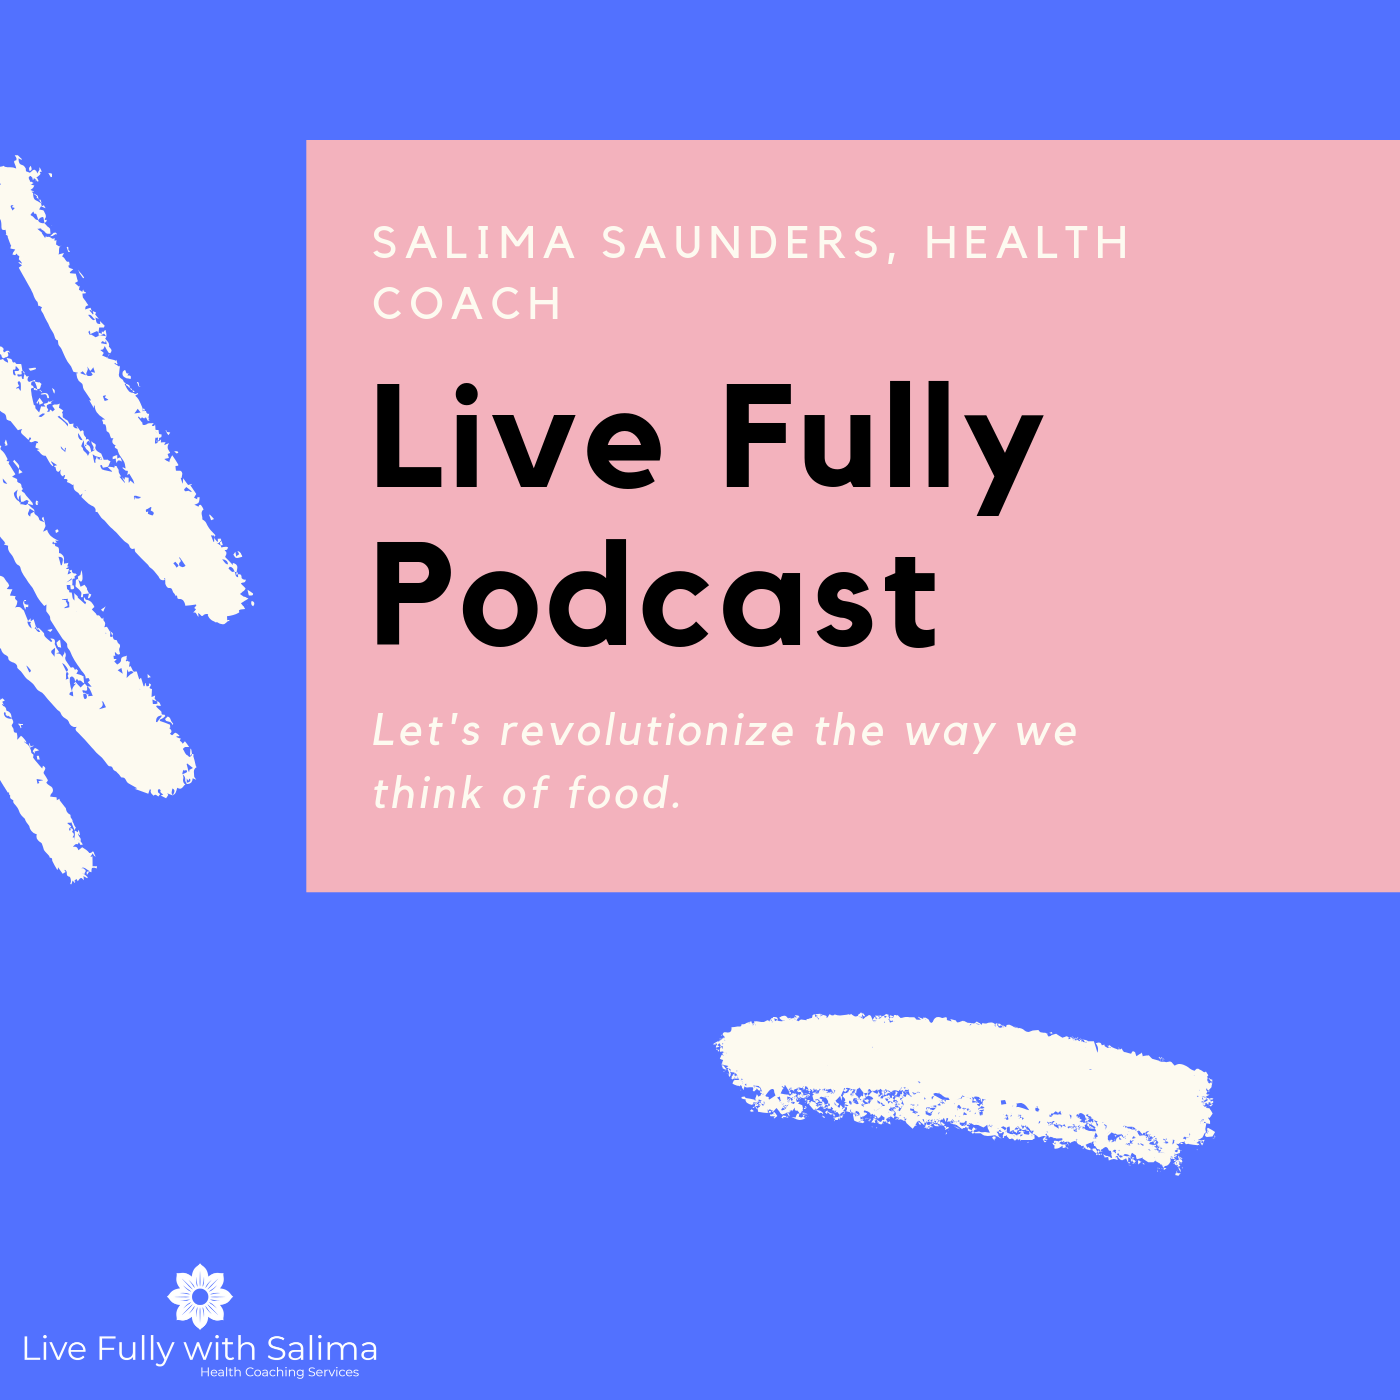 Live Fully Podcast - I want to explore what is trending in the world of food to help motivate others to get back into the kitchen and reconnect with food, themselves, and others in the process.